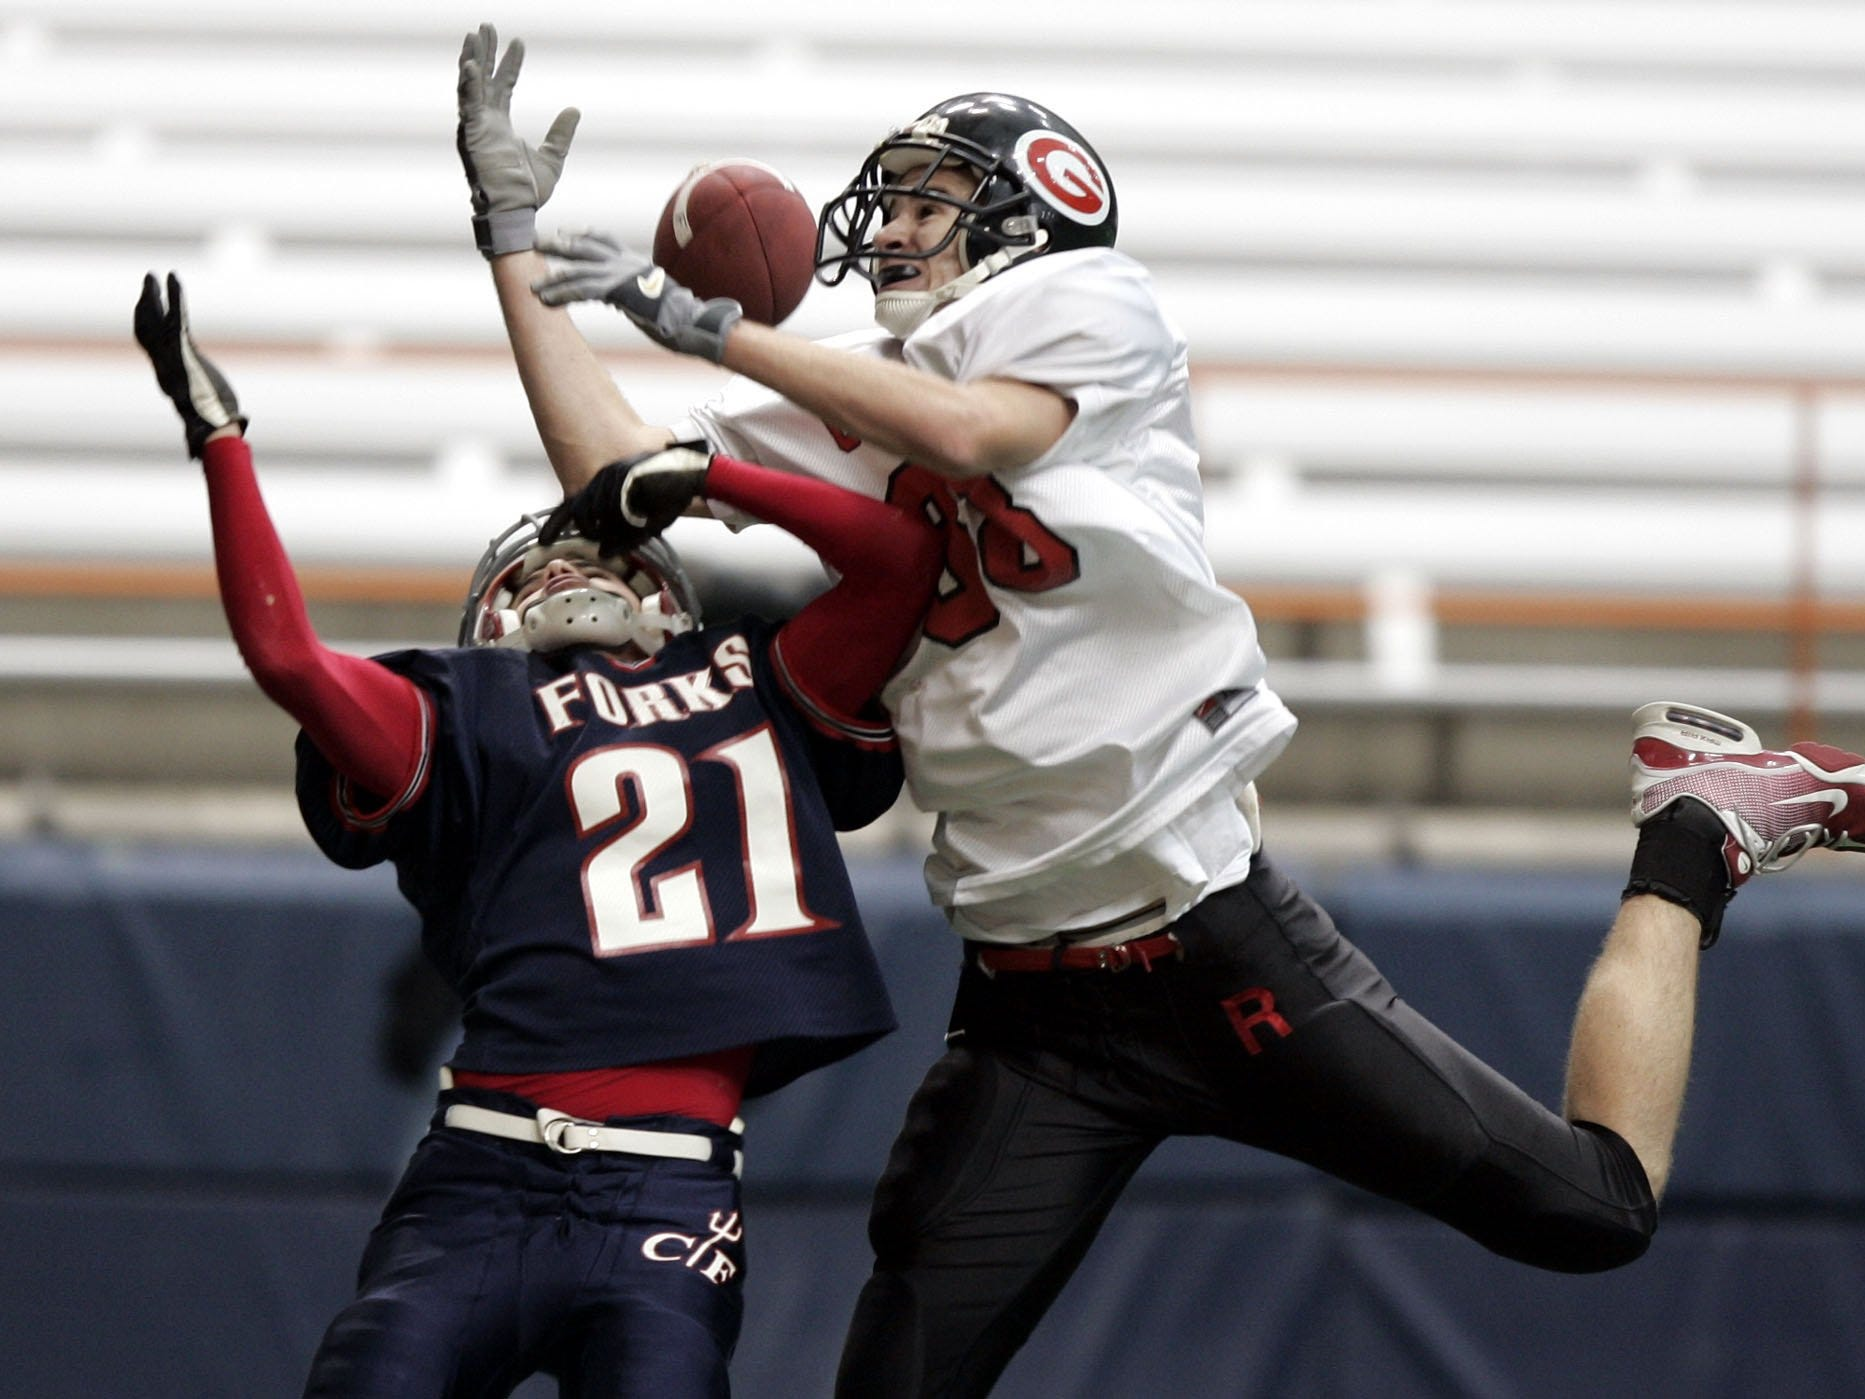 Rye's Tim Monaghan (88) knocks a pass away intended for Chenango Forks' Ben Farnham (21) during the Class B State Final at the Carrier Dome in Syracuse, N.Y. Nov. 26, 2004. Chenango Forks won, 48-0.